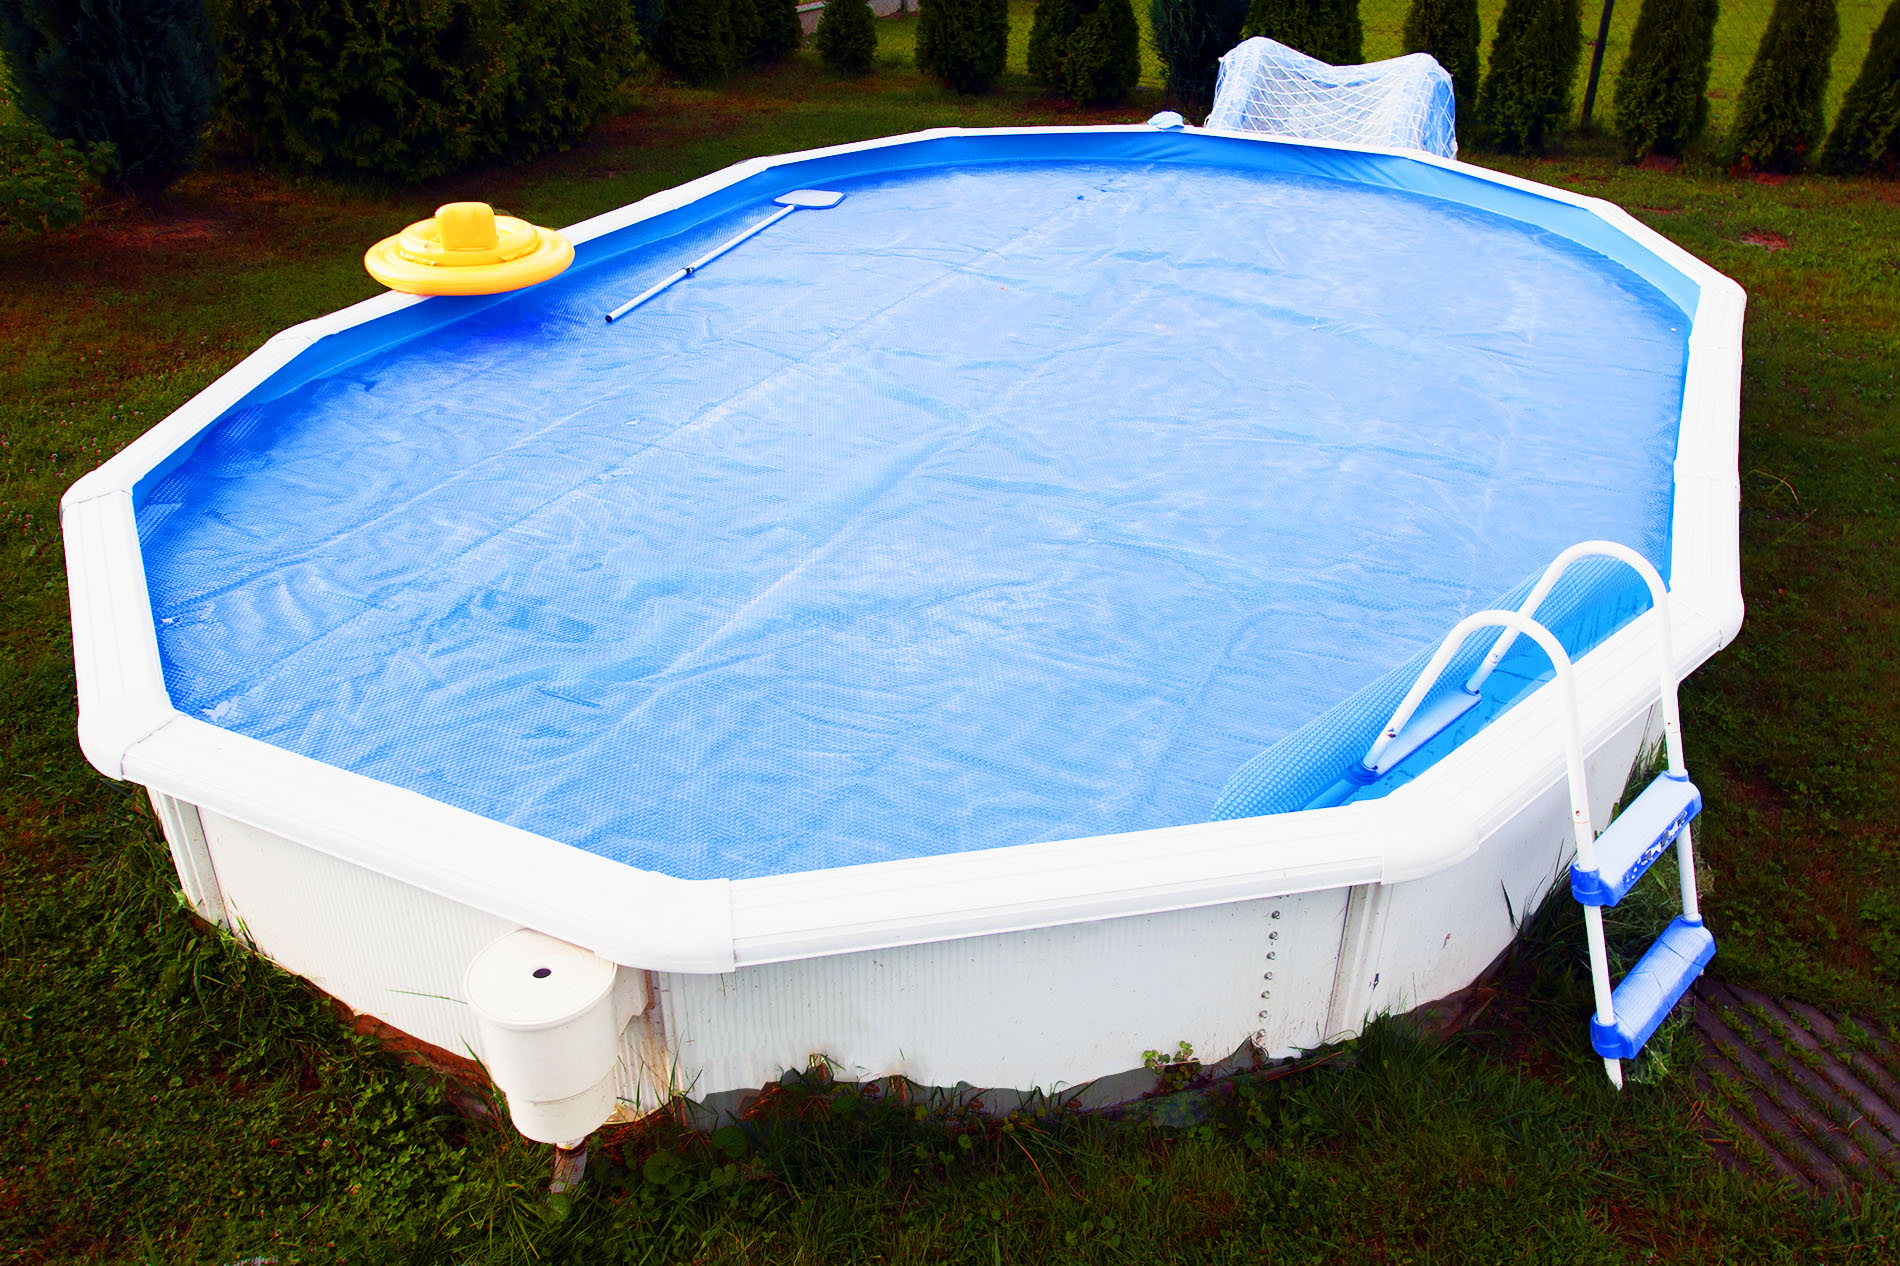 aboveground-pool-closing-liner